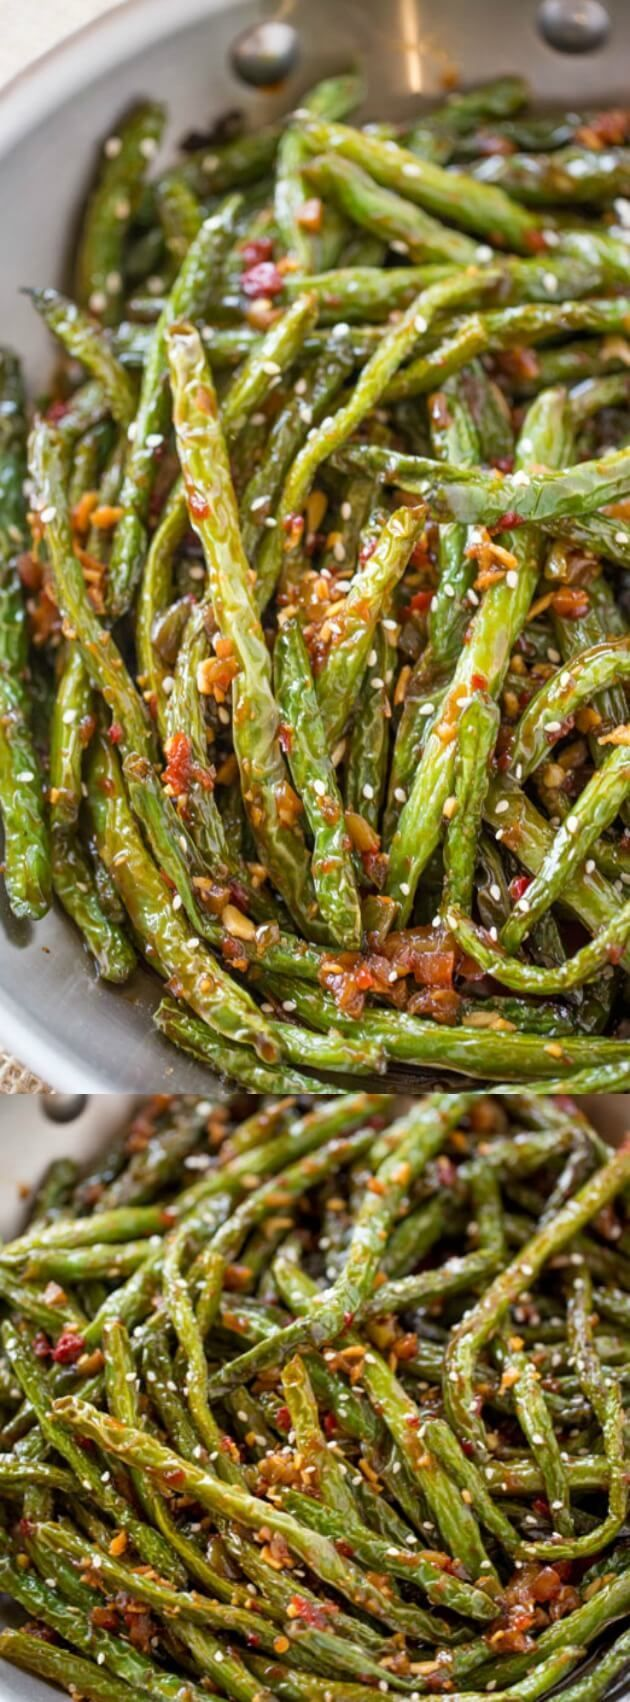 These Spicy Chinese Sichuan Green Beans from Dinner, then Dessert are the perfect easy side dish to your favorite Chinese meal! They are a breeze to make and have only a few ingredients!